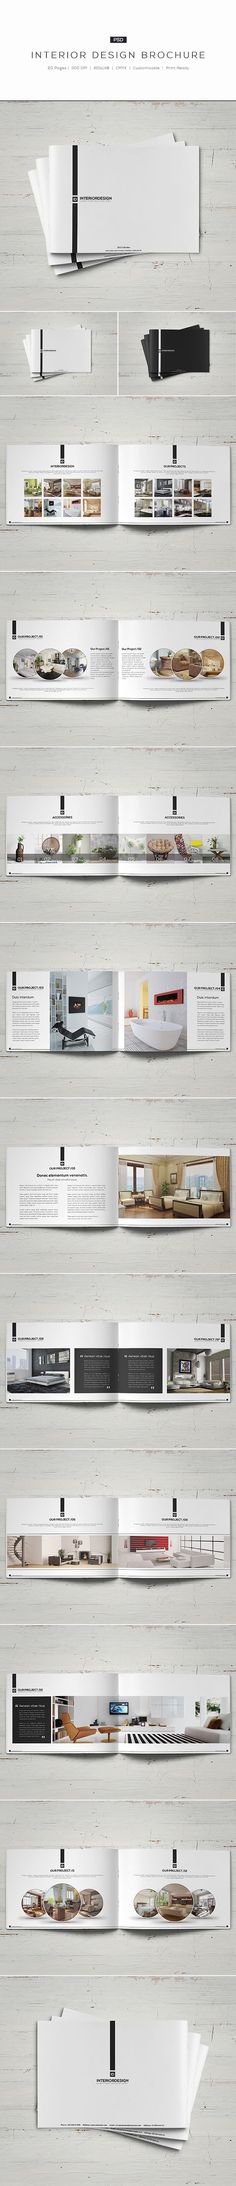 Interior Design Brochure on Behance:                              …